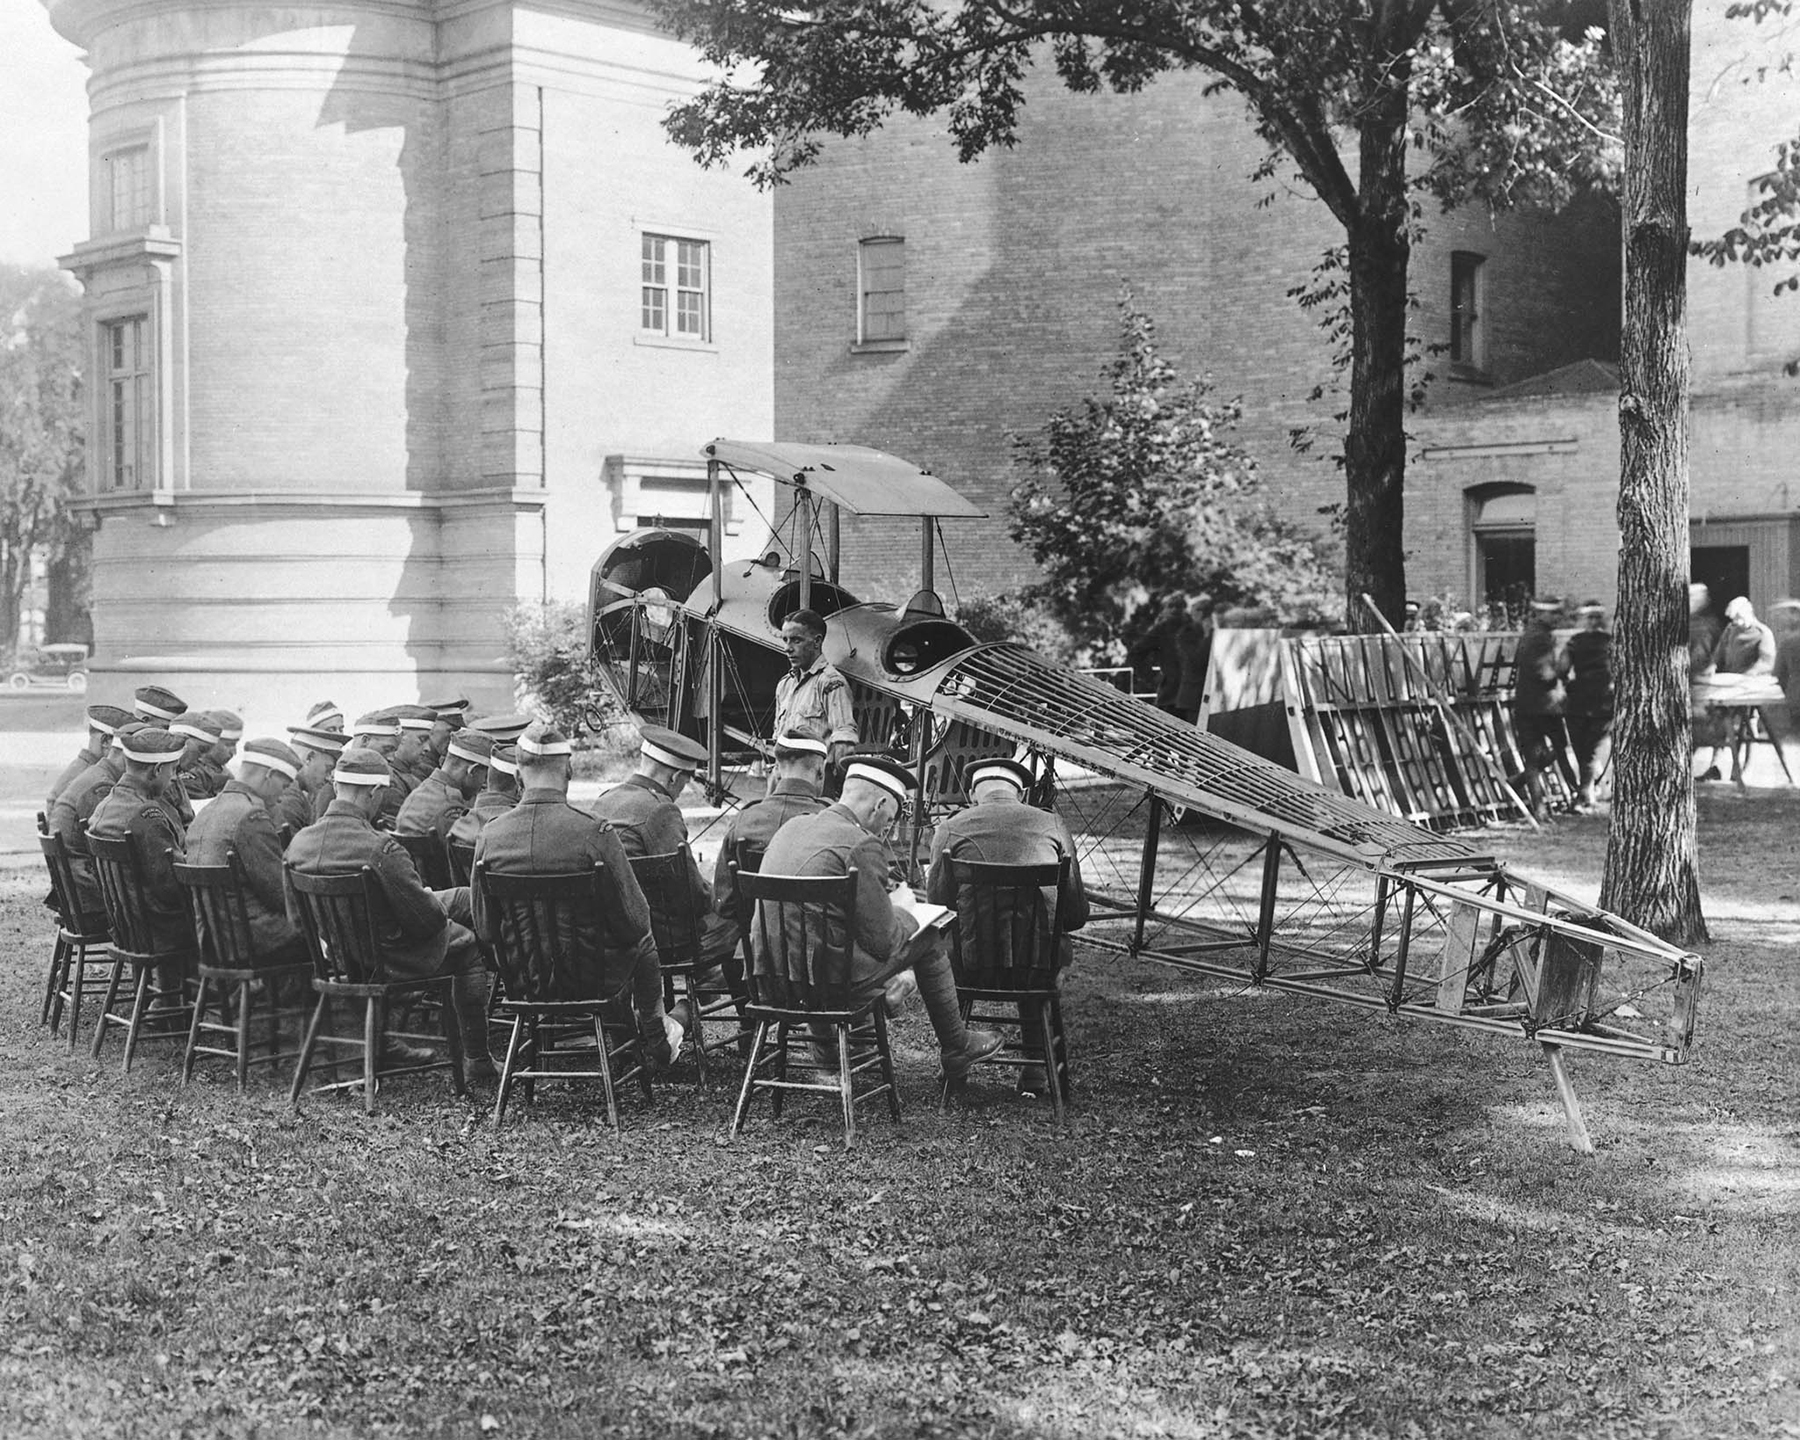 Students at the School of Aeronautics, located at the University of Toronto, enjoy a lecture on aircraft construction al fresco. PHOTO: DND Archives, RE-19065-13